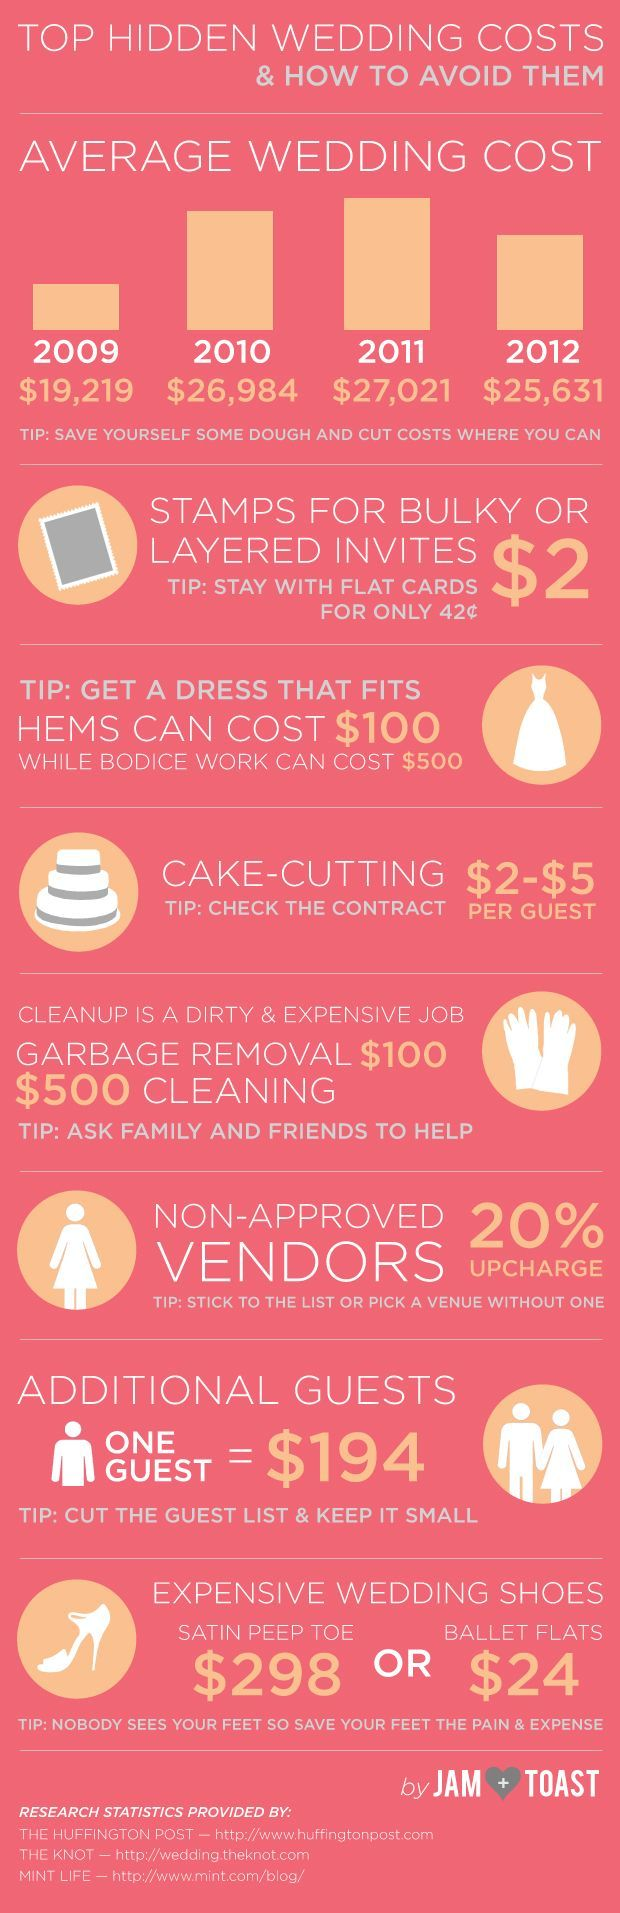 Wedding Budget Checklist: Top Hidden Wedding Costs and How to Avoid Them